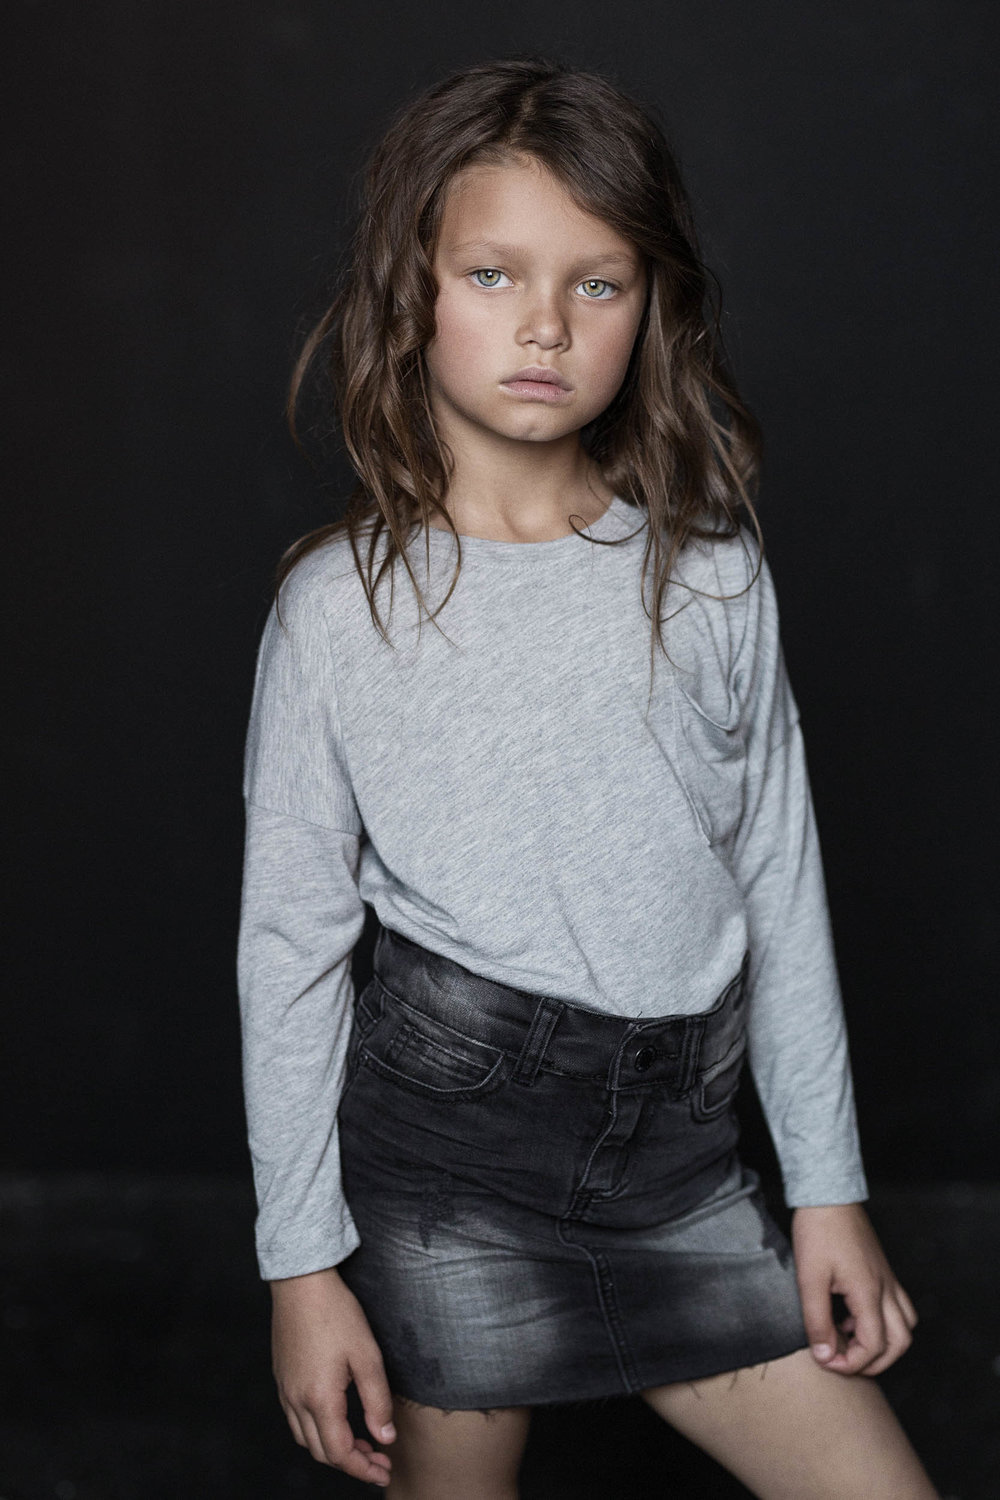 Child Model Zoe photographed by Nick Walters during a youth booking.jpg